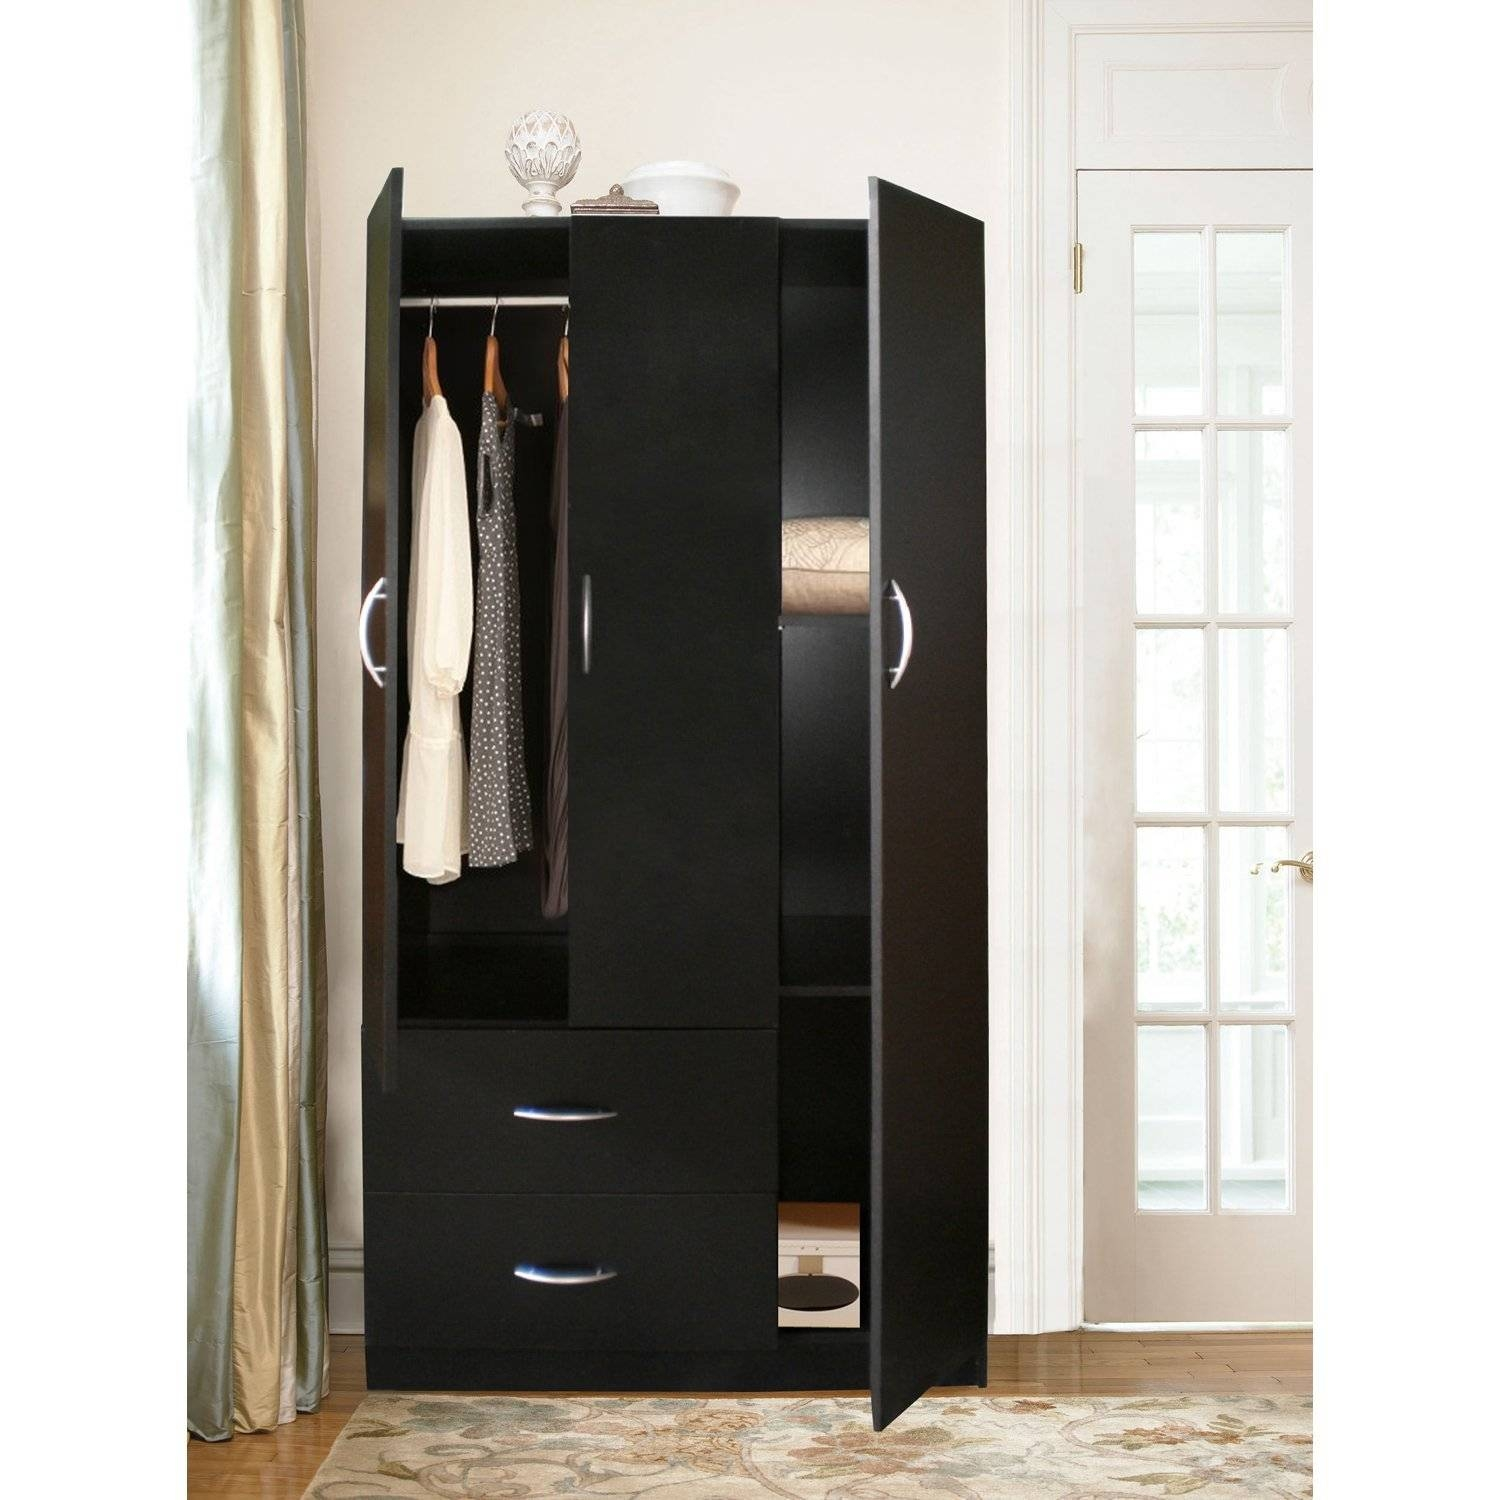 Awesome Dark Brown Mahogany Wood Armoire Wardrobe Storage Cabinet with regard to Dark Wood Wardrobe Closet (Image 2 of 30)